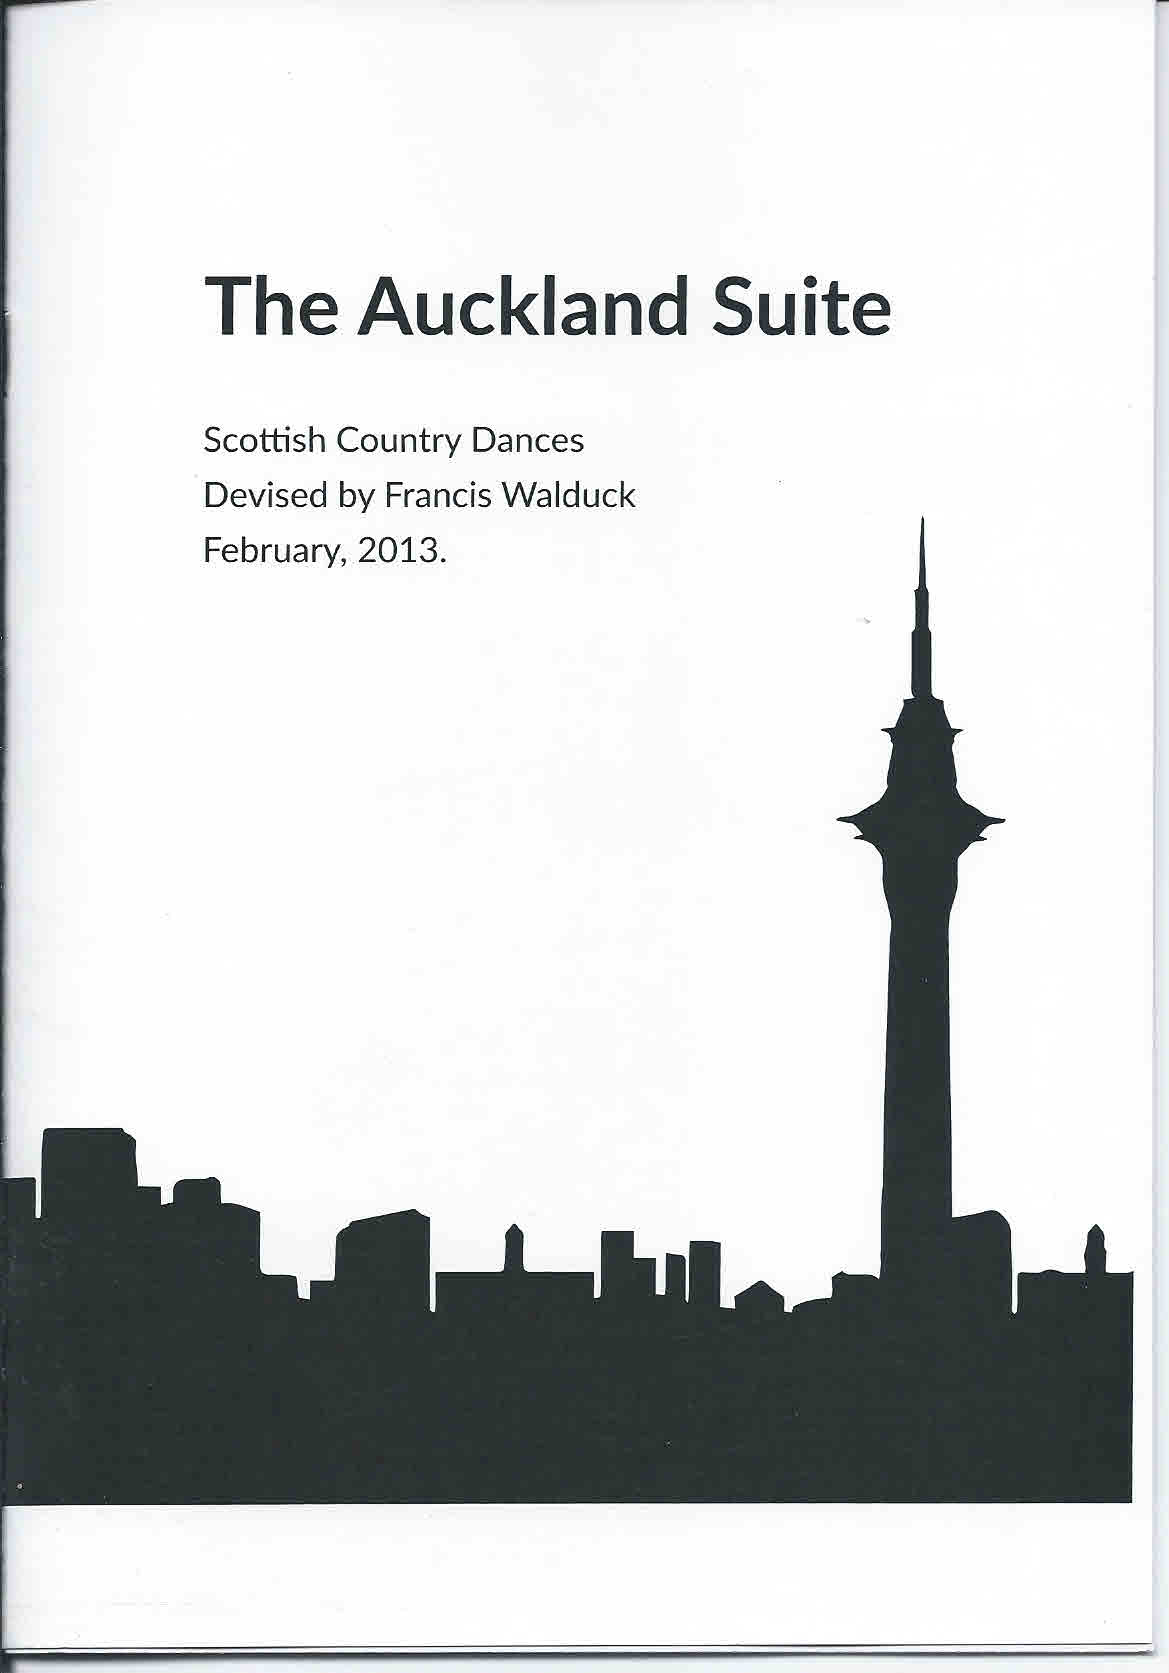 The Auckland Suite of SCD